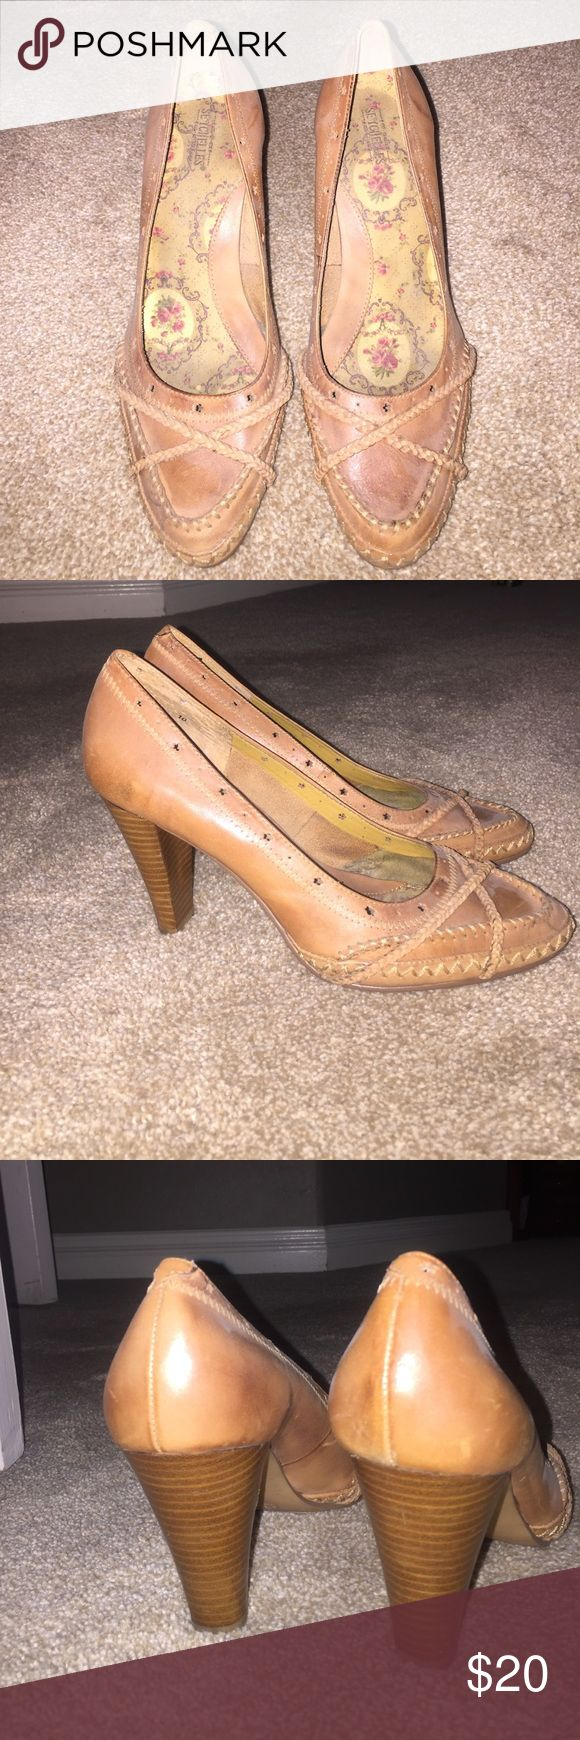 Seychelles Great used condition Seychelles. Very comfortable. Size 10 Seychelles Shoes Heels